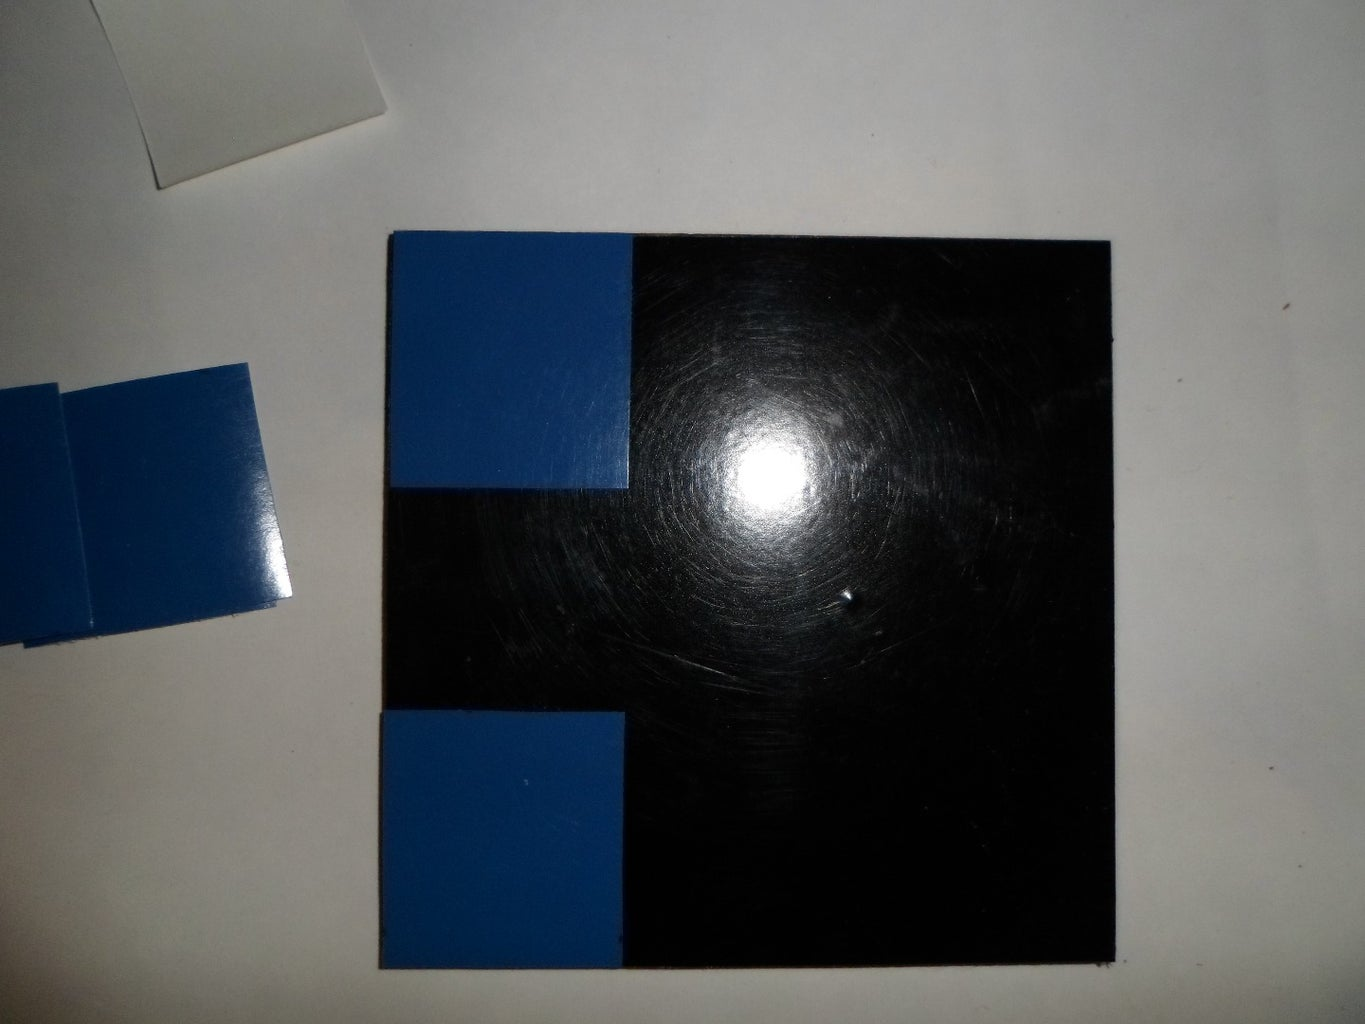 Step 5: Stick the Other Vinyl Paper